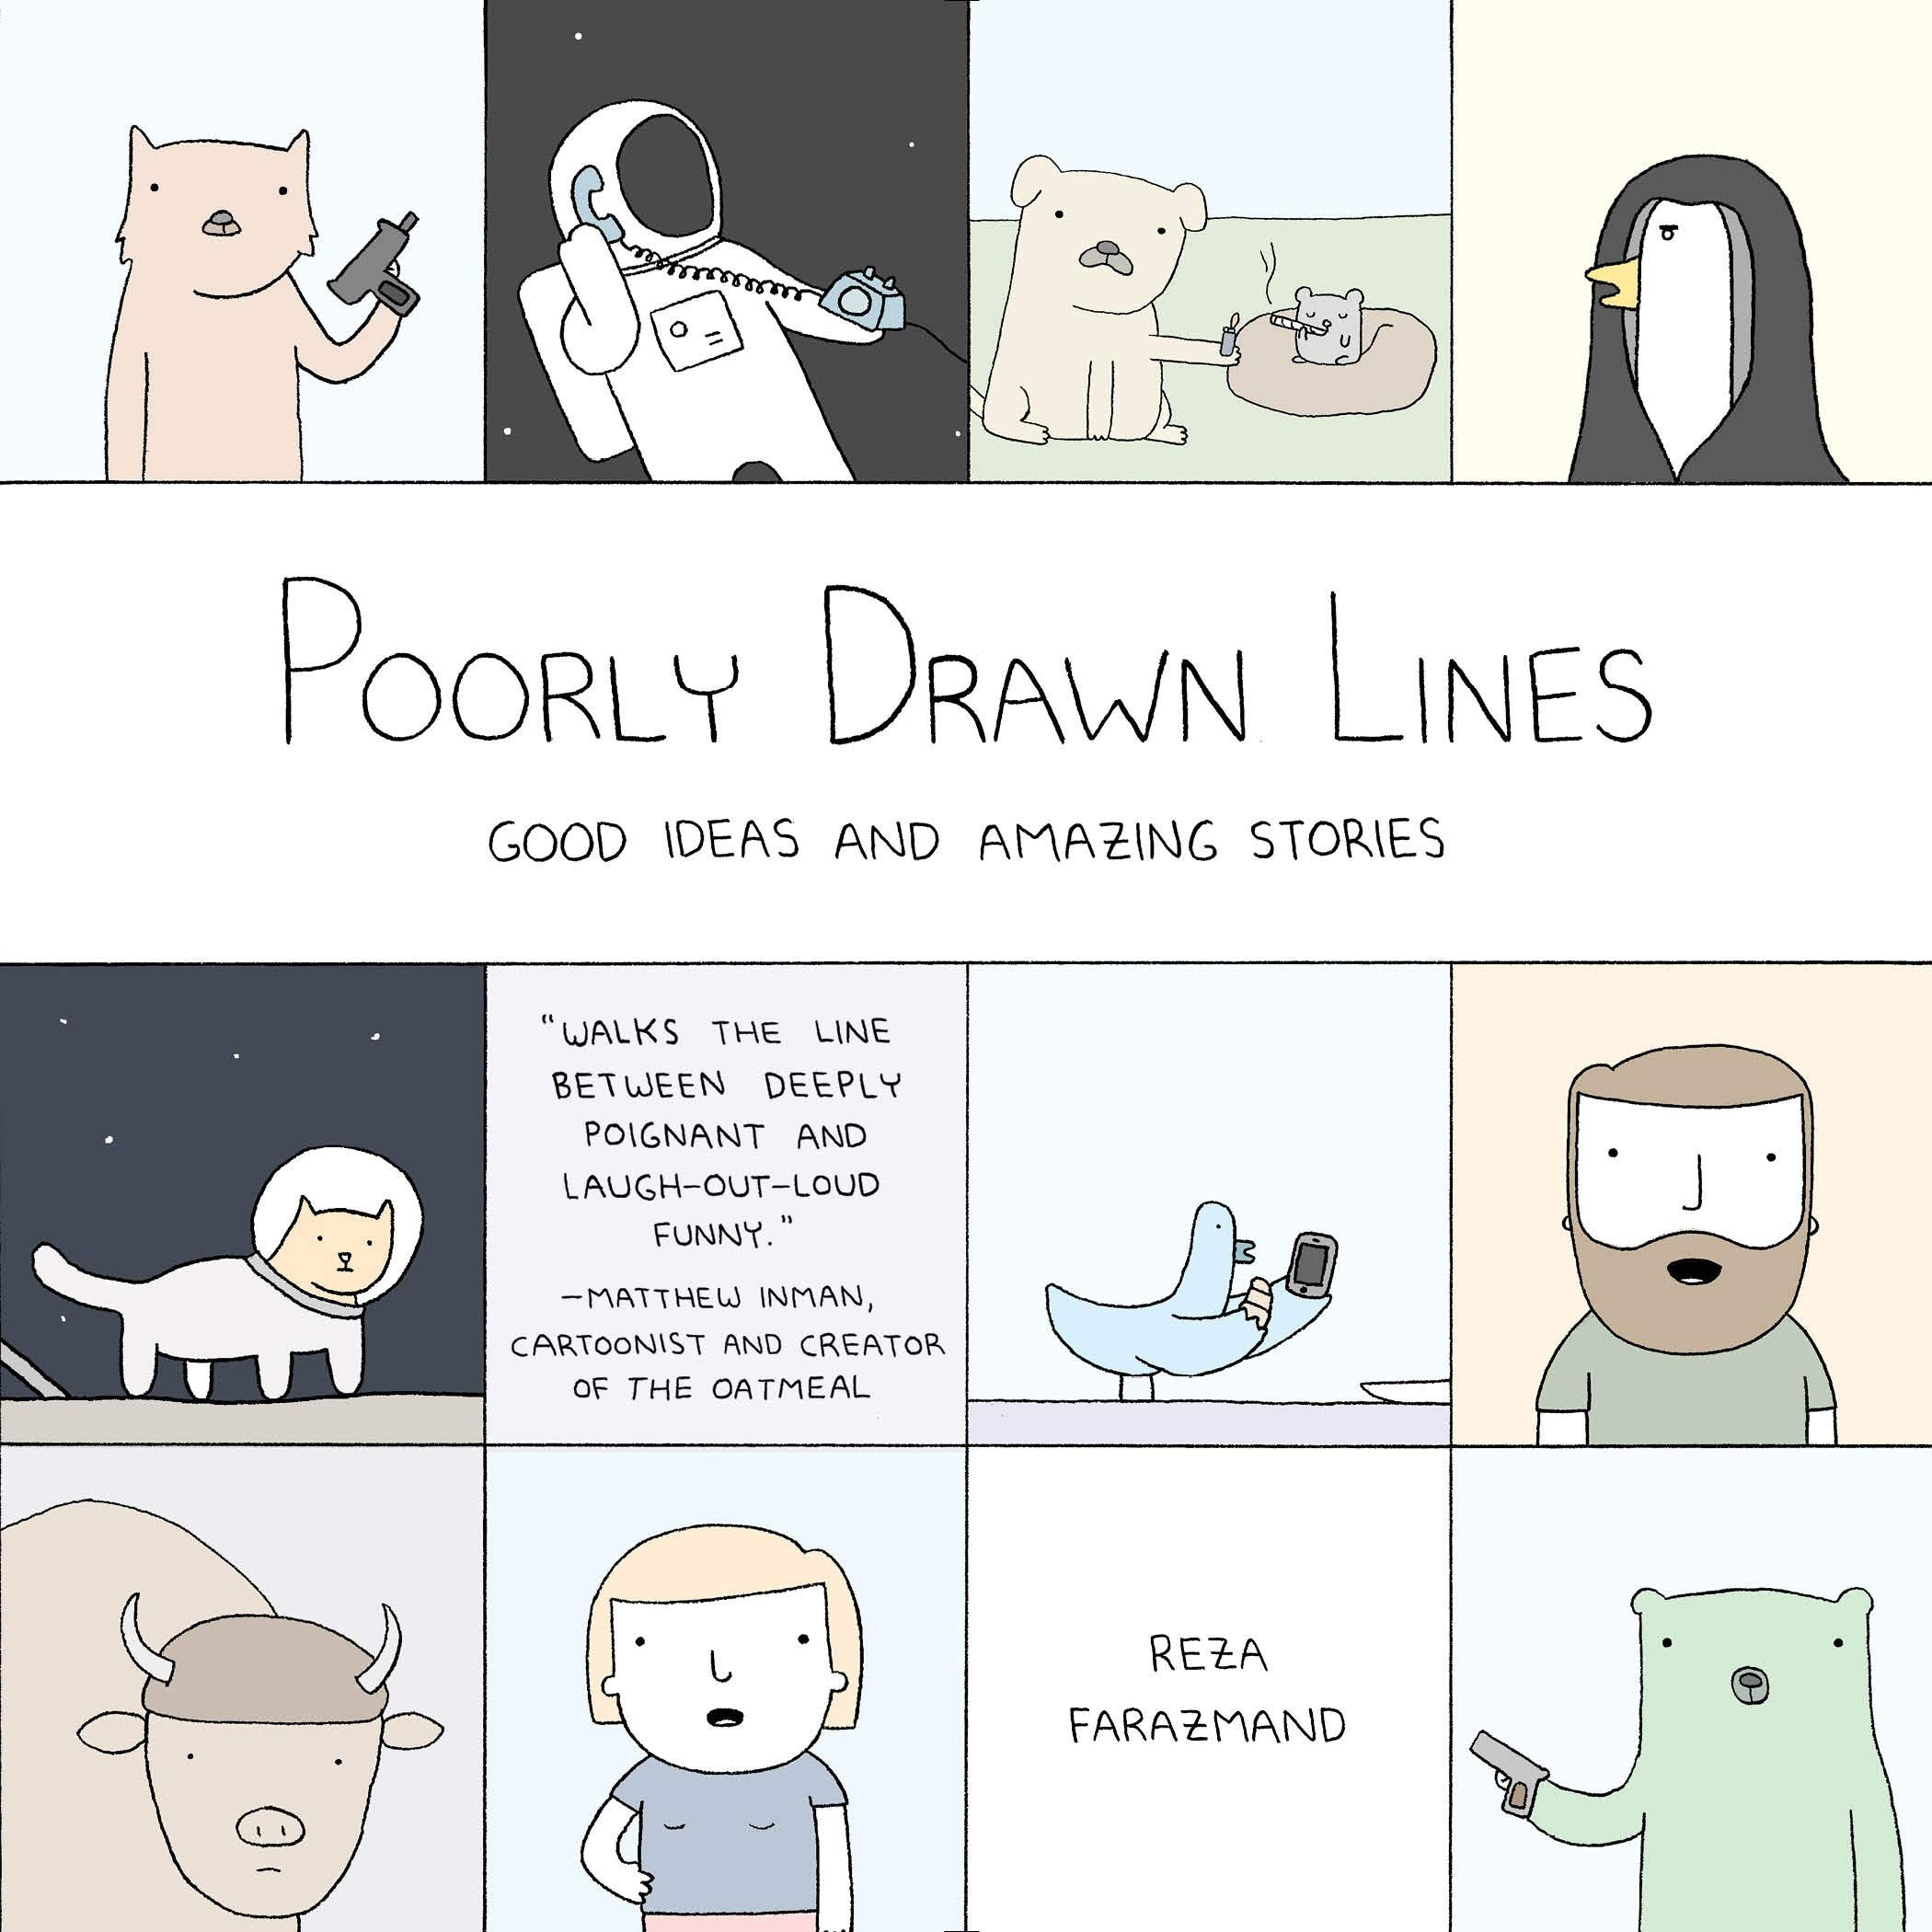 Image OfPoorly Drawn Lines: Good Ideas And Amazing Stories